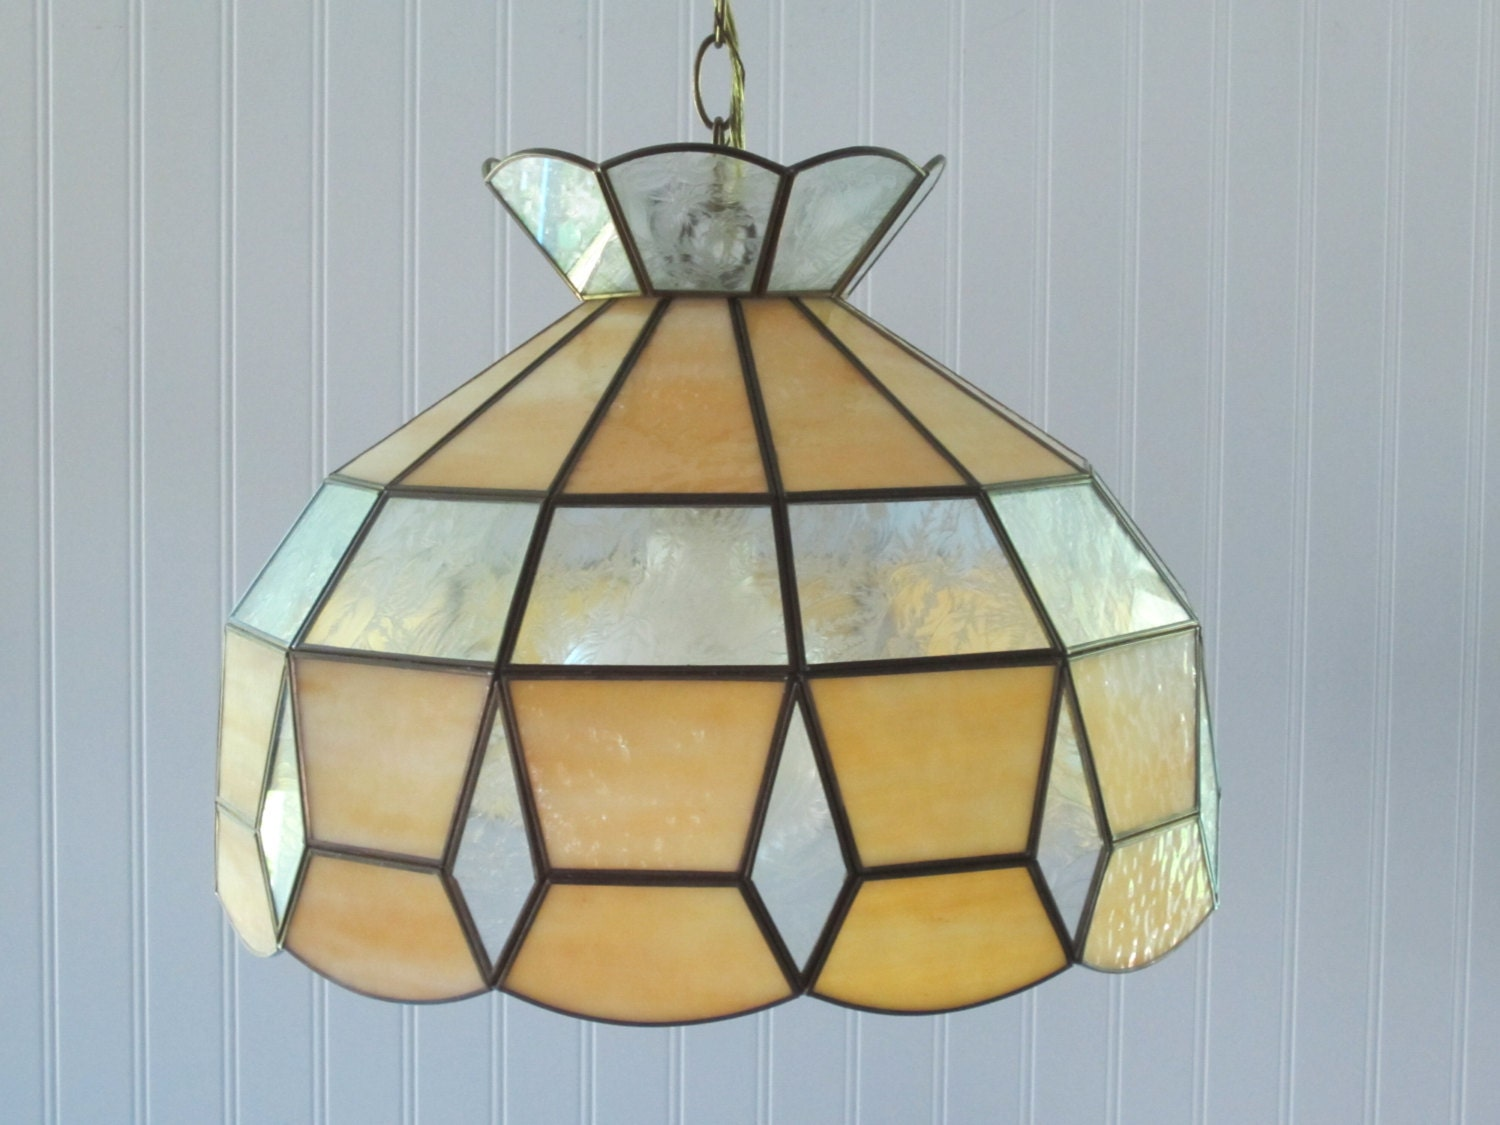 Vintage Tiffany Style Glass Hanging Light Fixture